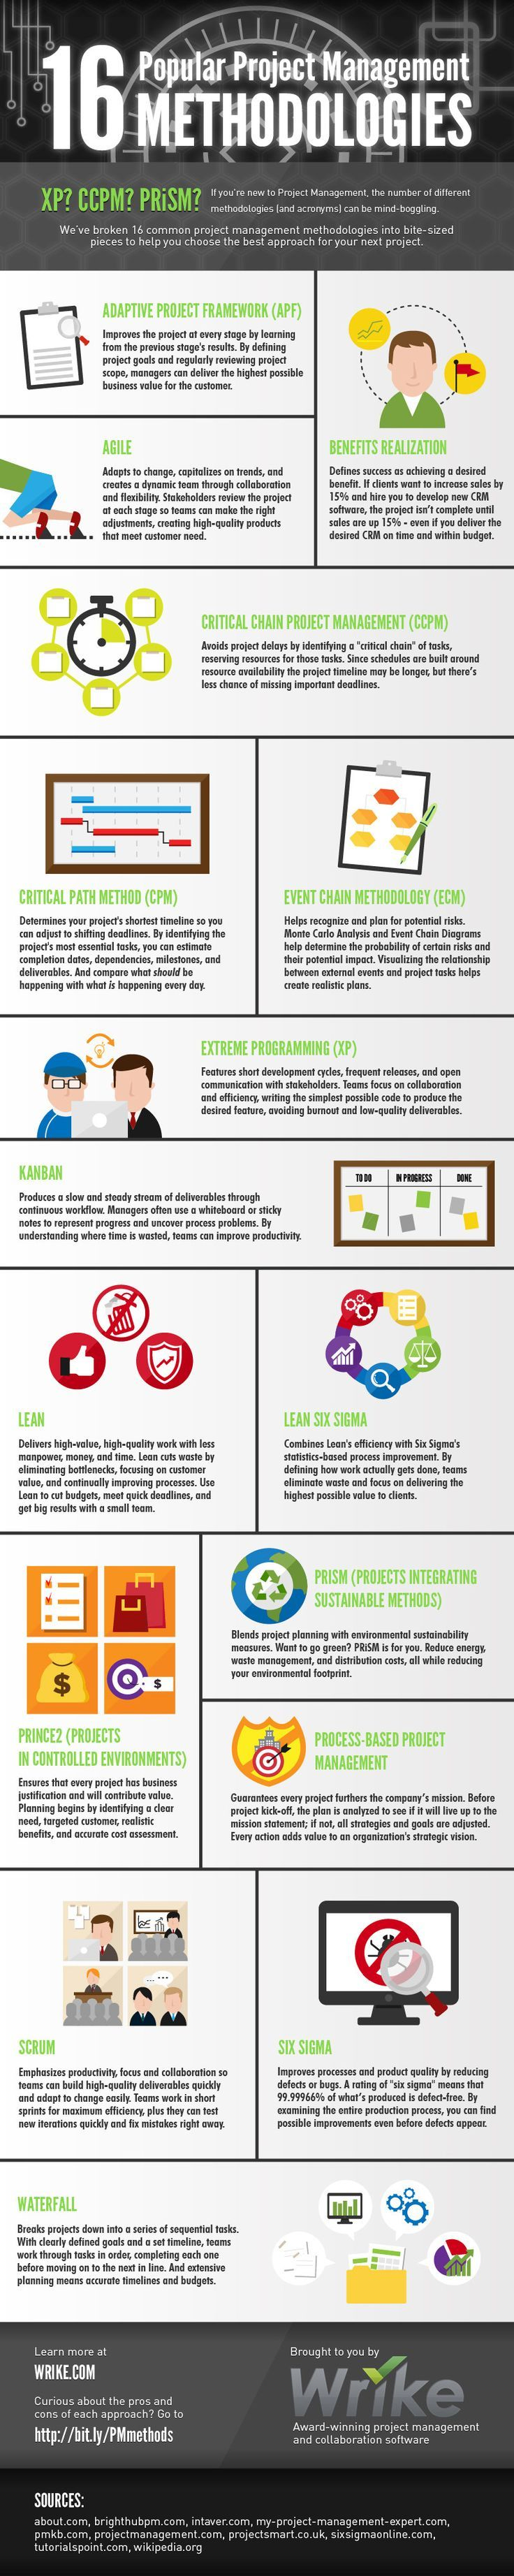 365 best time management images on pinterest productivity time if youre new to project management the number of different methodologies and acronyms can be mind boggling weve broken 16 common project management xflitez Choice Image